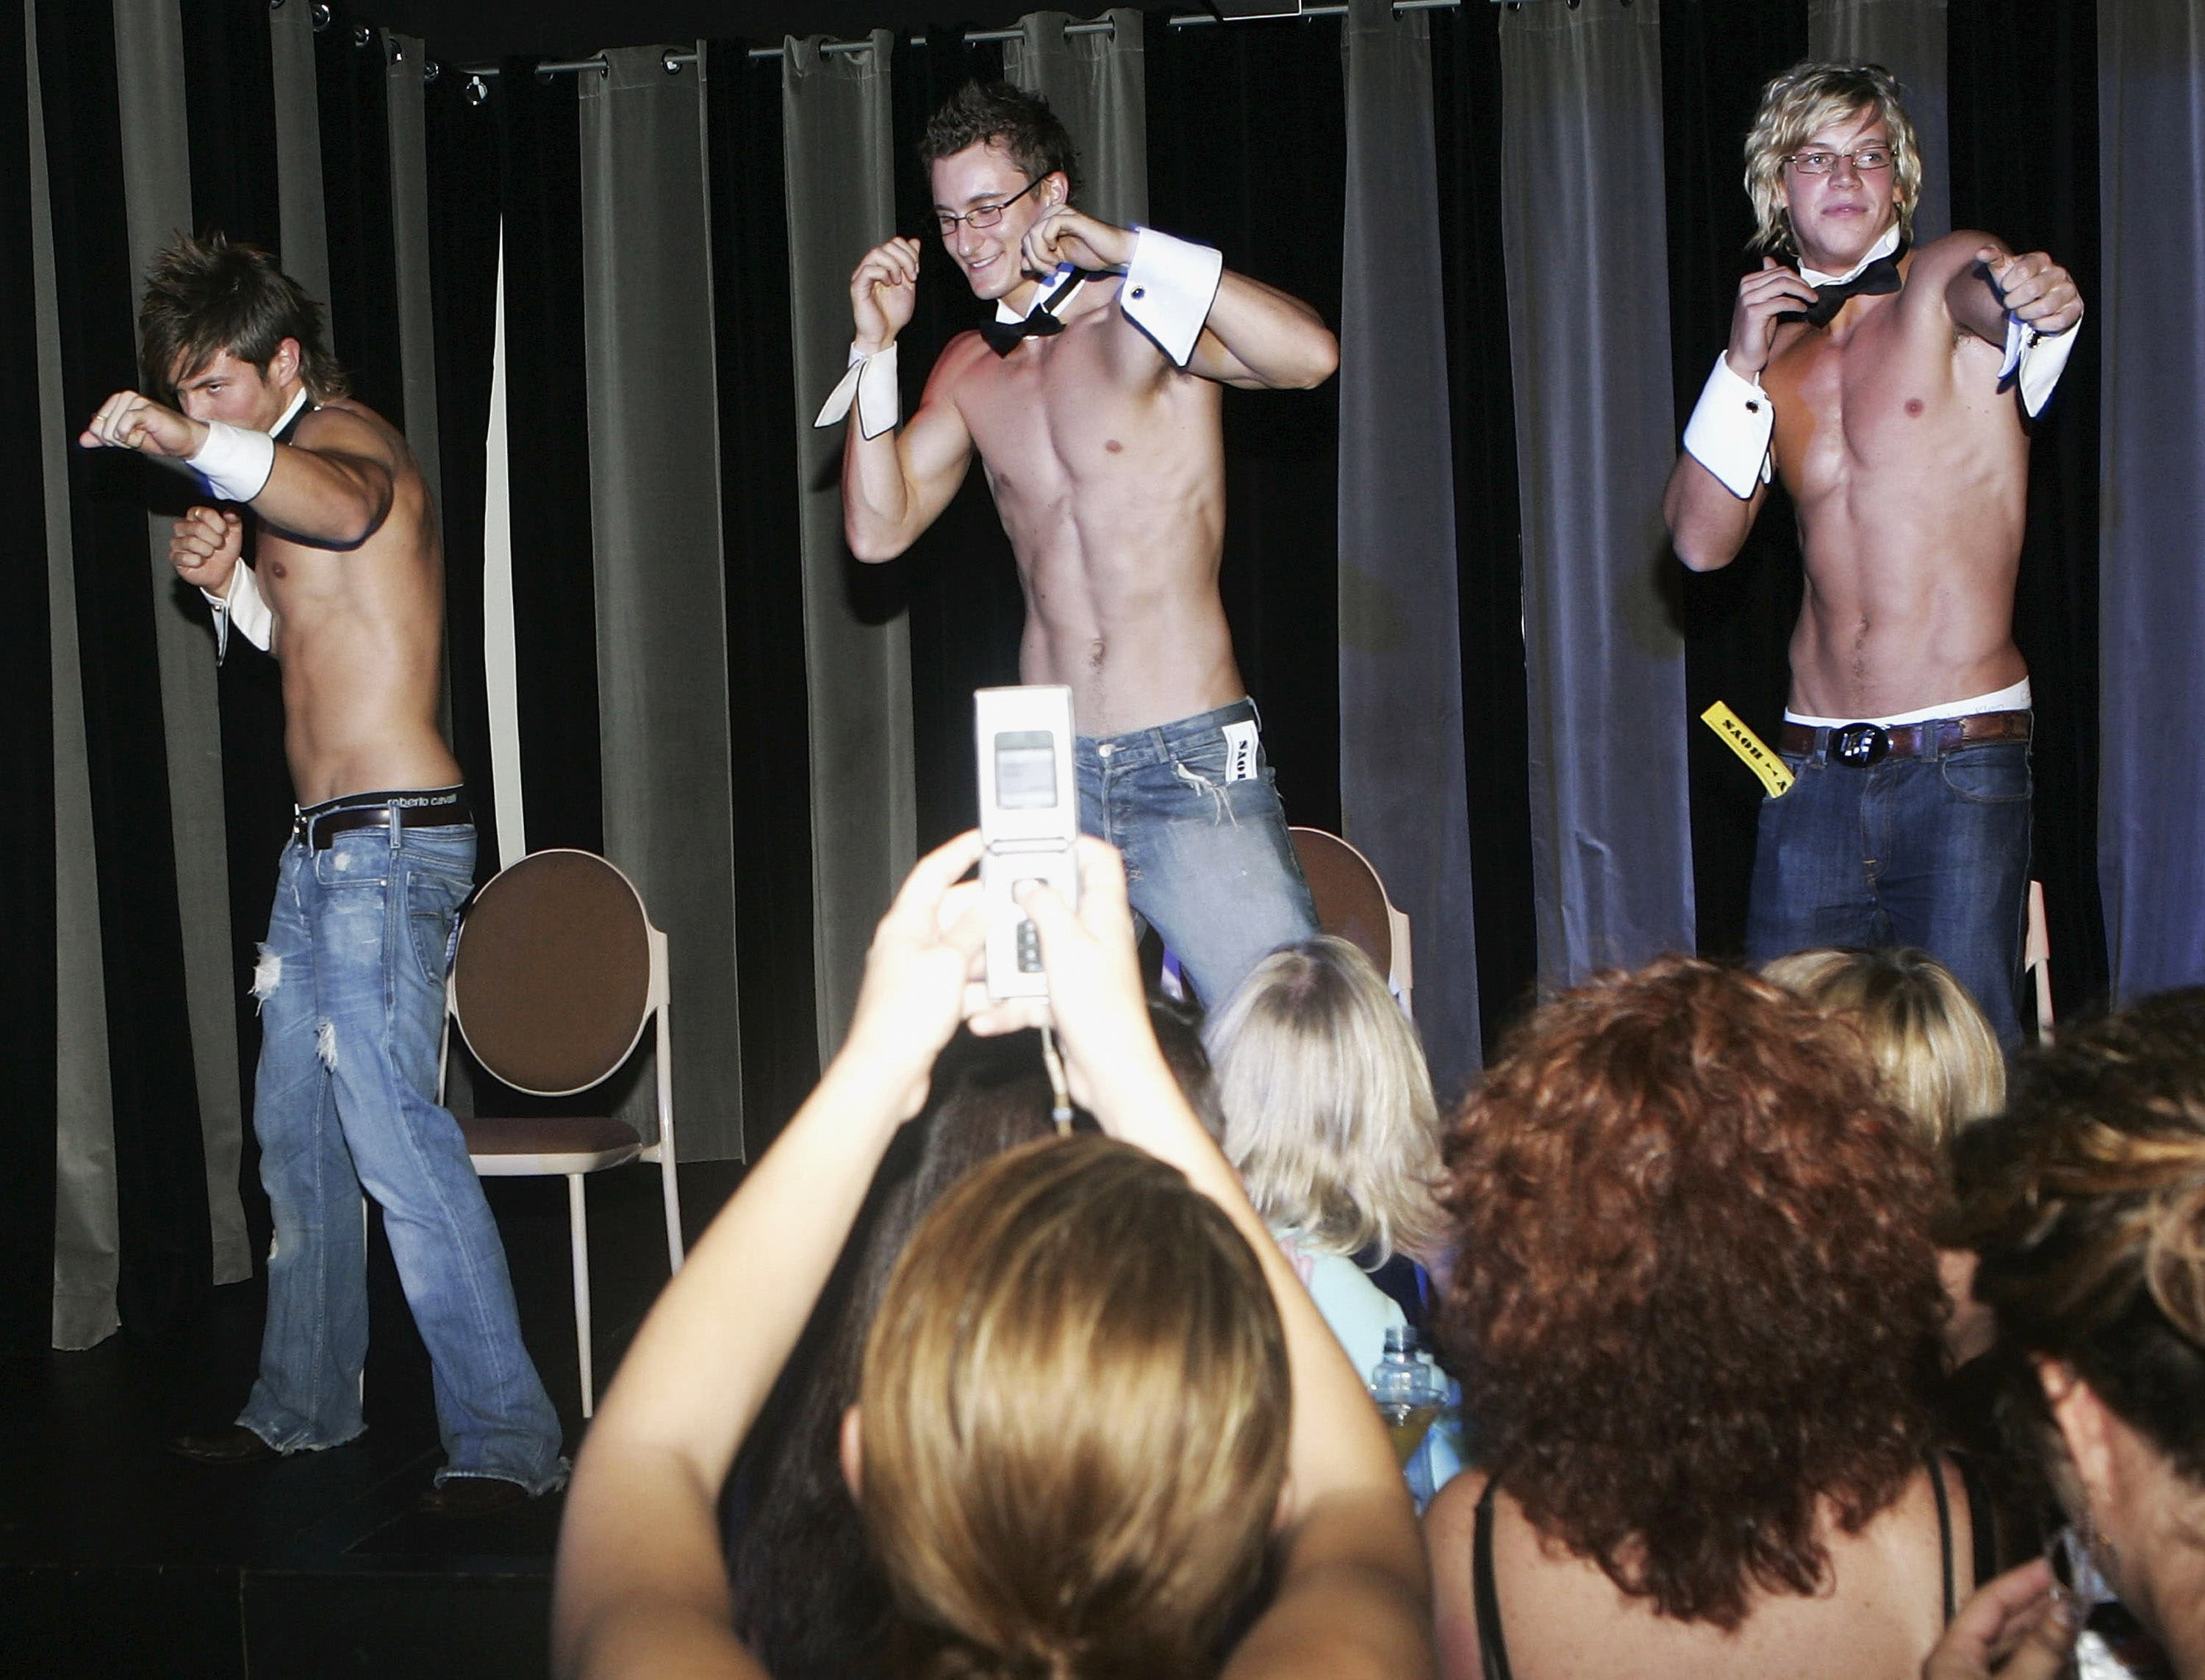 The subject of male stripping as a trade strikes some people's fancy. (Image used for illustrative purposes)